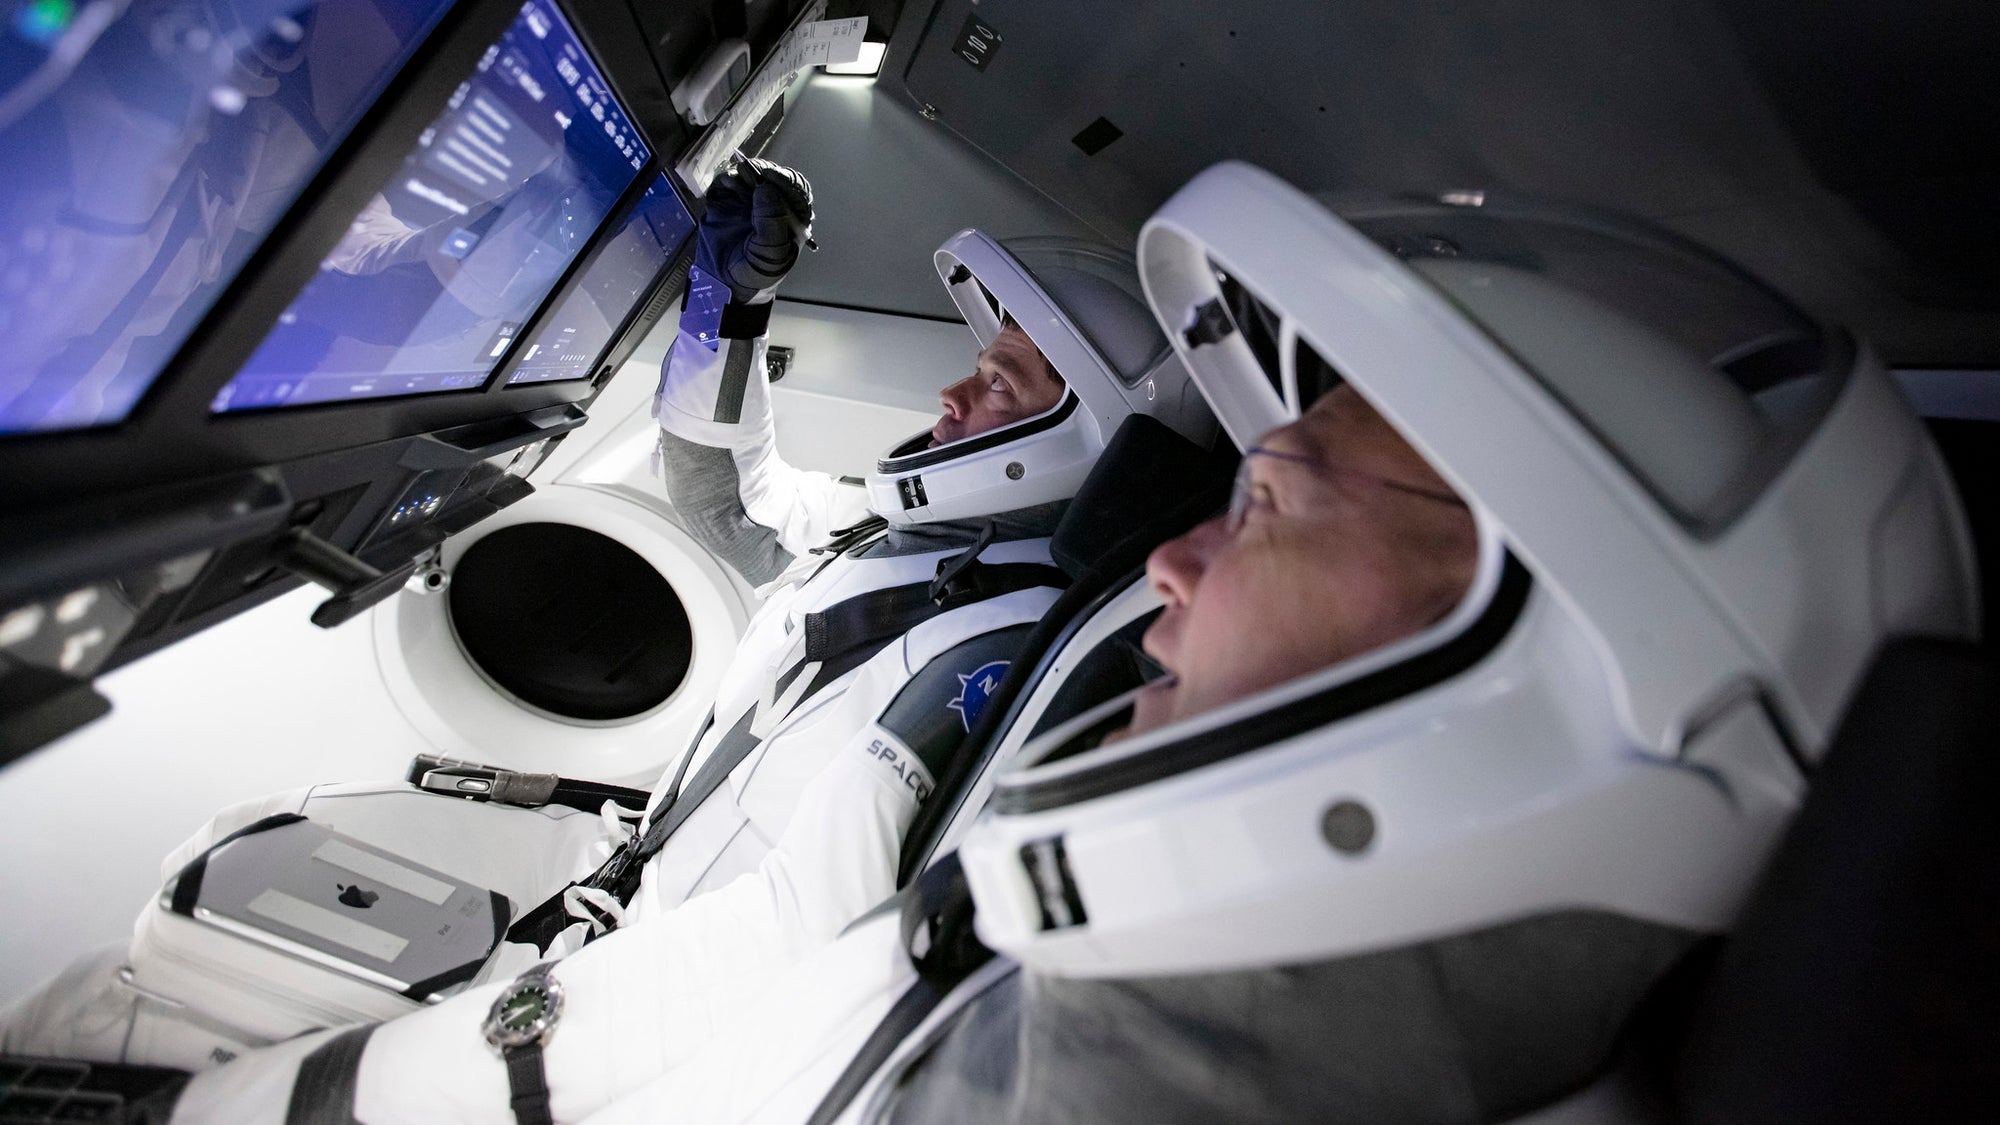 NASA Astronauts will pilot SpaceX's Crew Dragon manually to test the feature